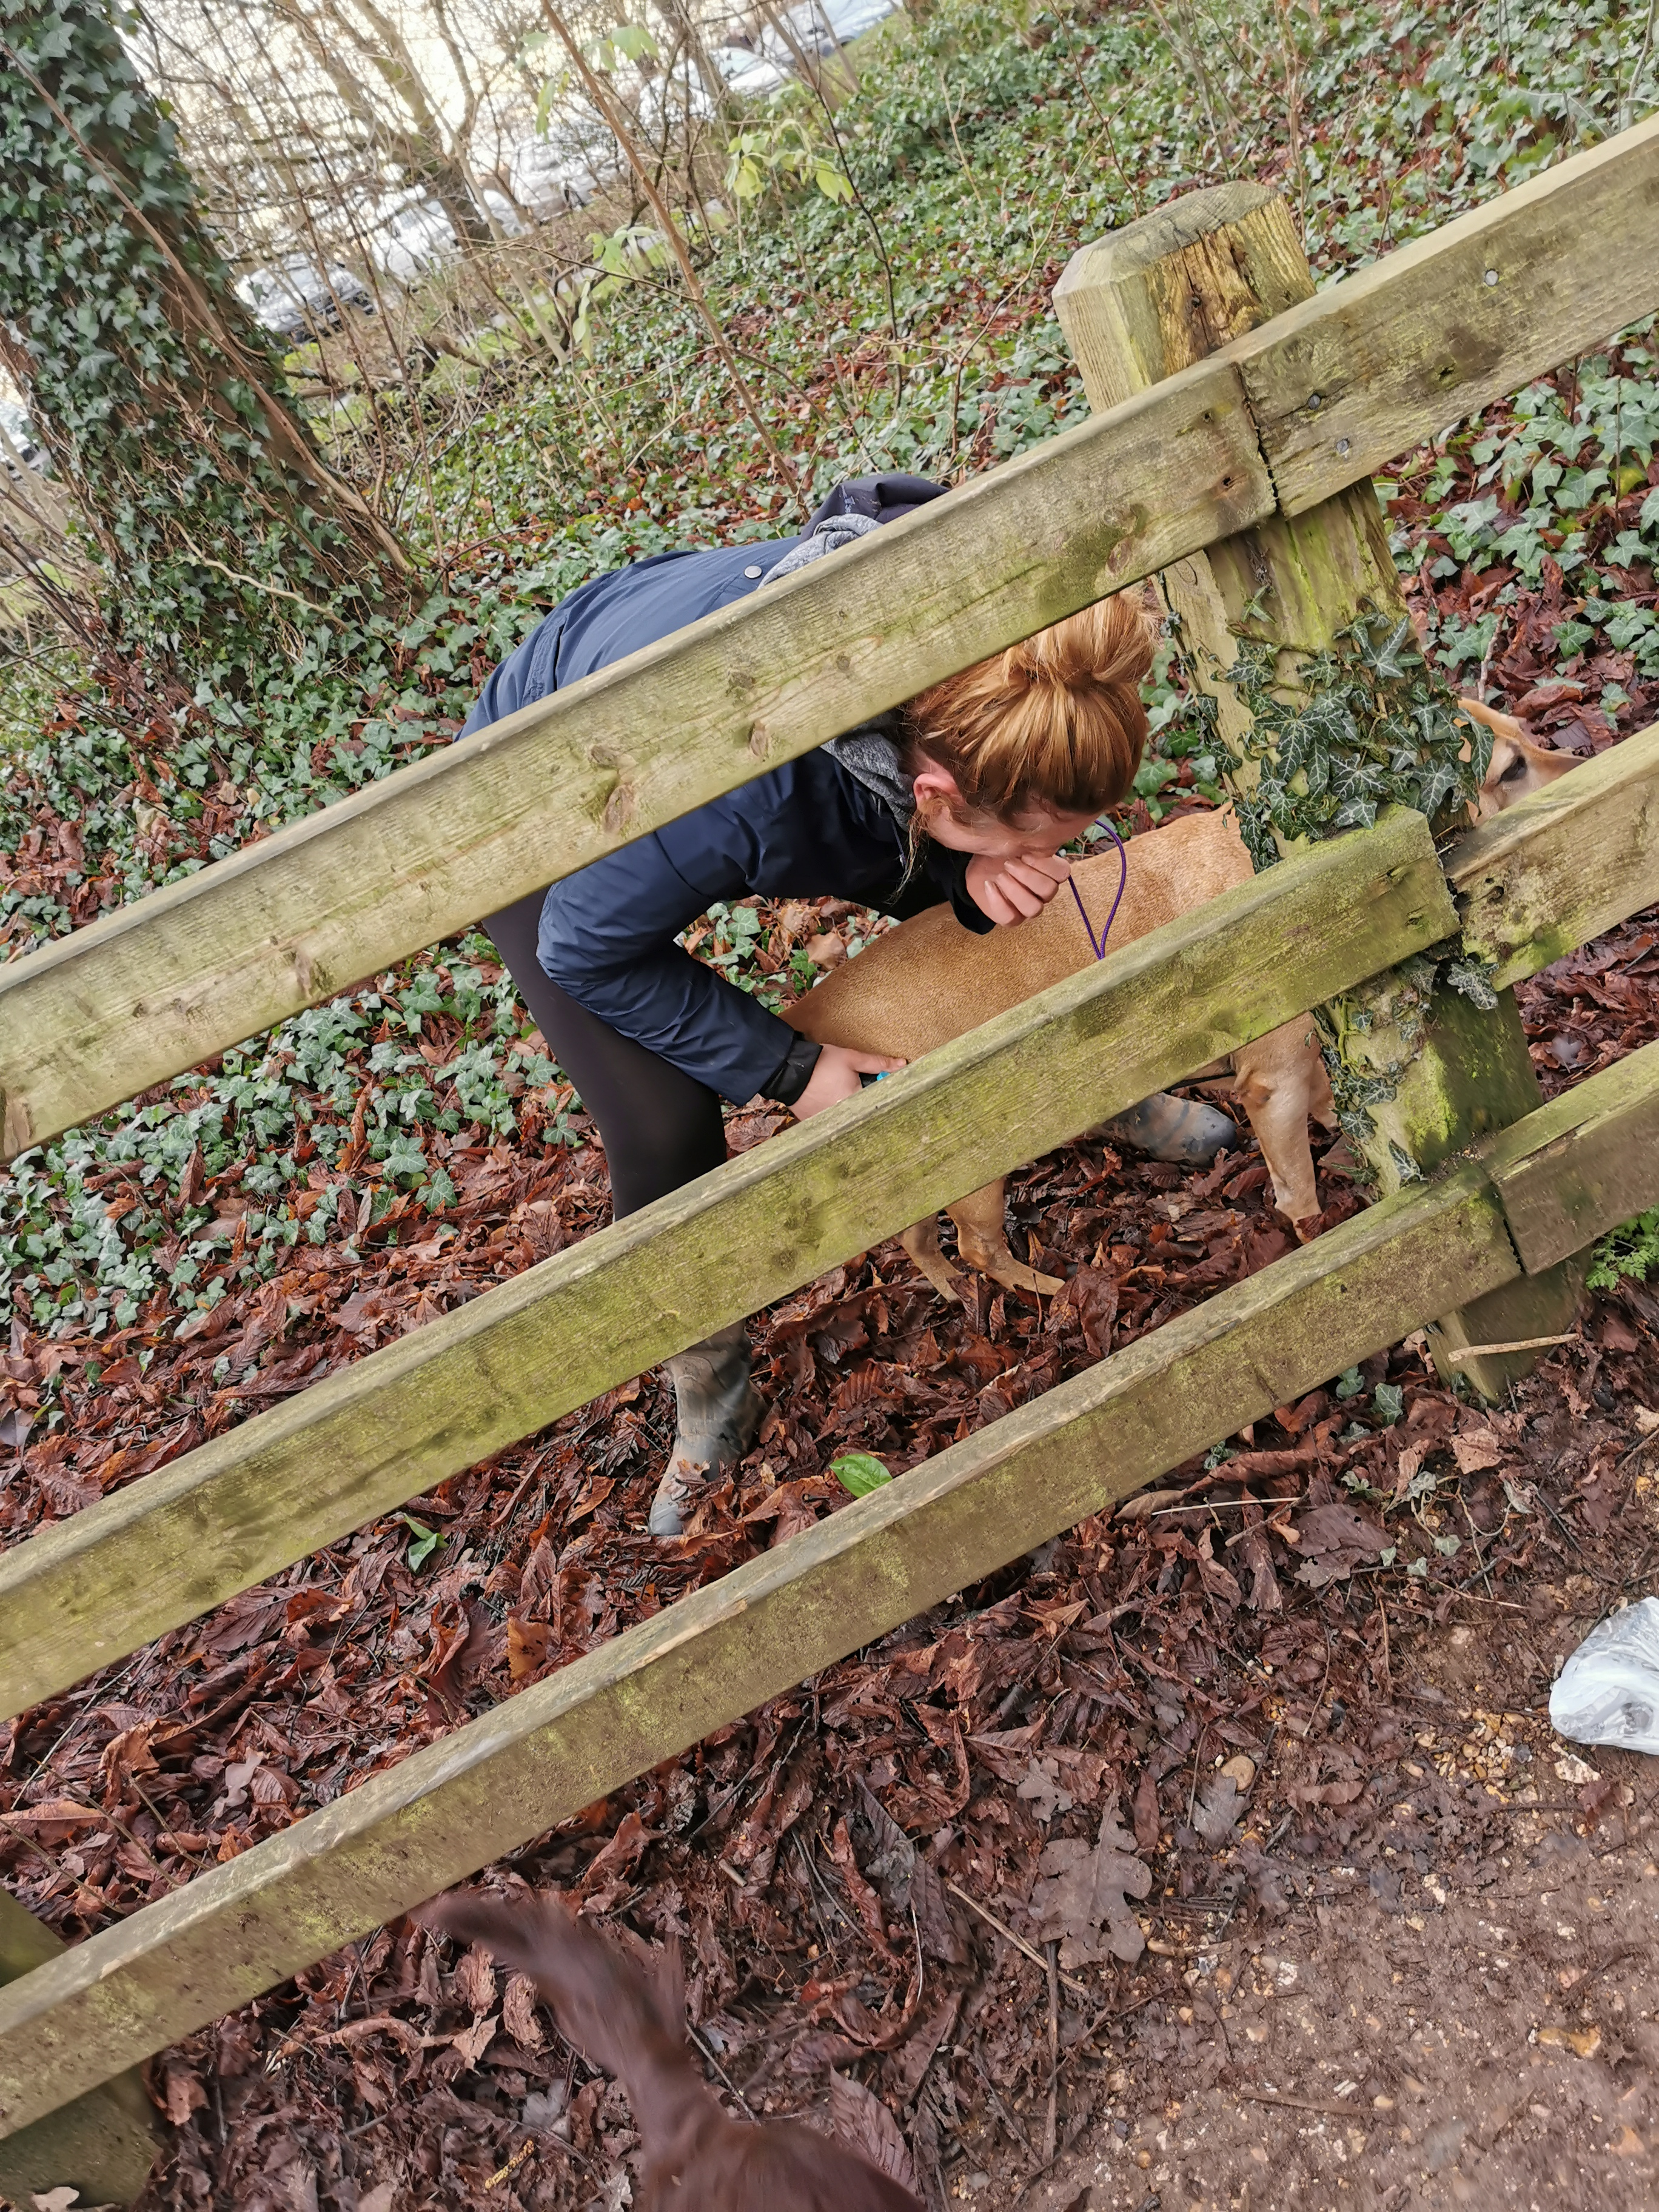 Trying to lift Sash over the fence